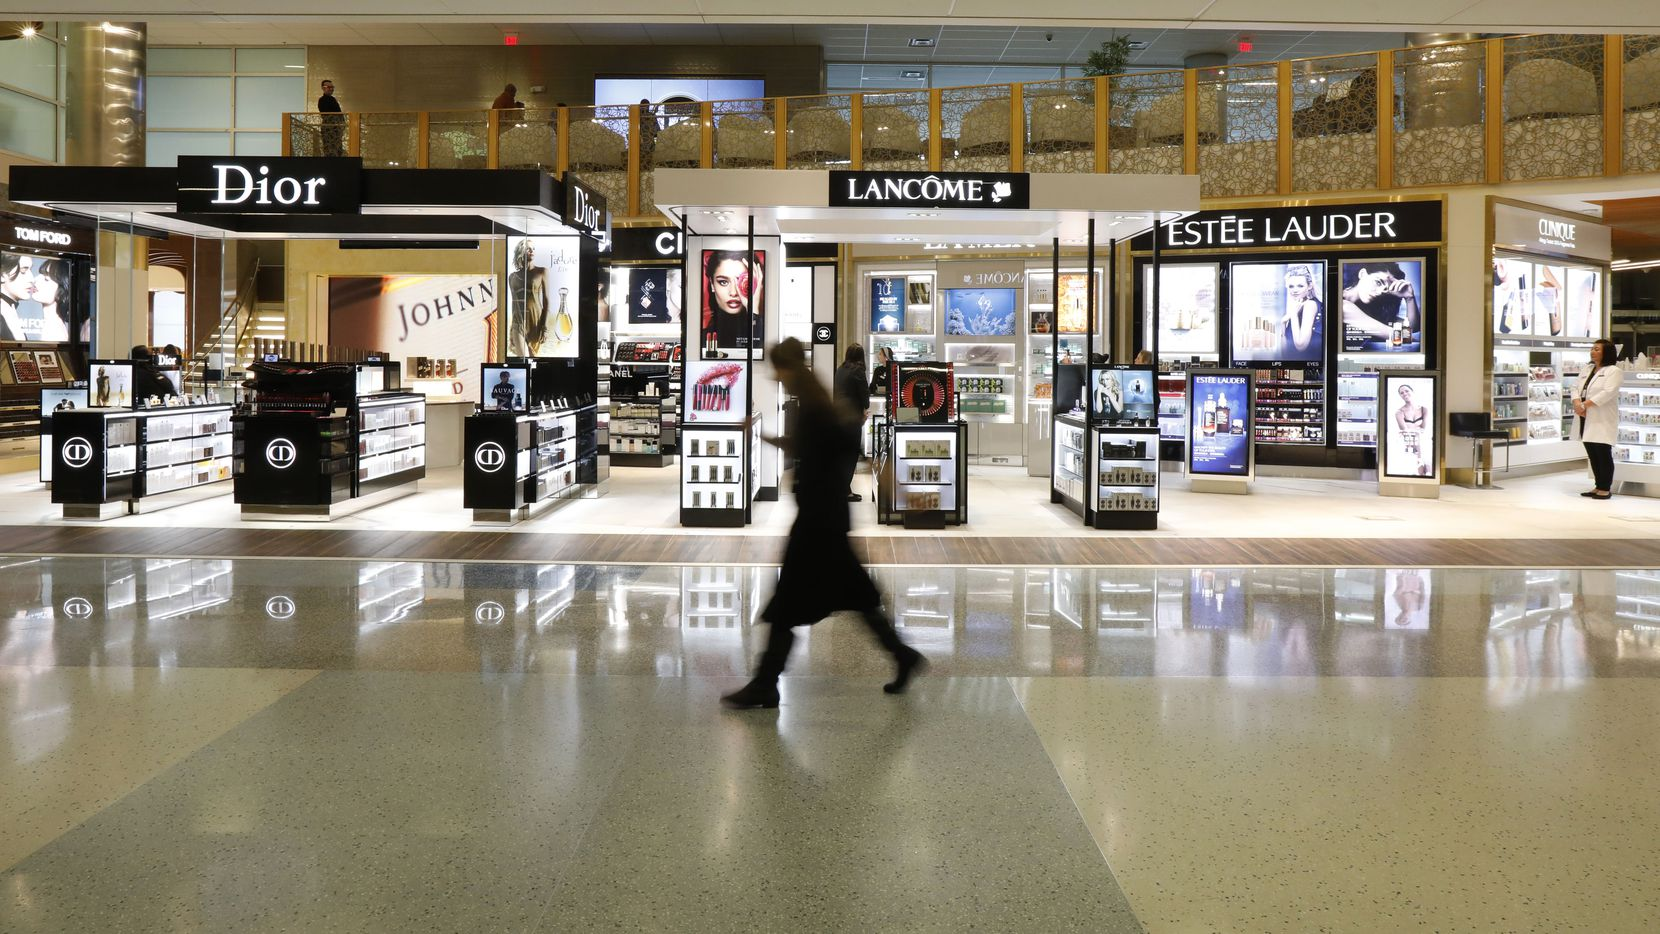 A passenger walks in front of the largest duty-free store in the Americas in Terminal D at DFW International Airport, featuring two levels, two elevators, four staircases, and extensive mezzanine lounge space in 17, 400 total square feet on Wednesday, December 20, 2017. (David Woo/The Dallas Morning News)